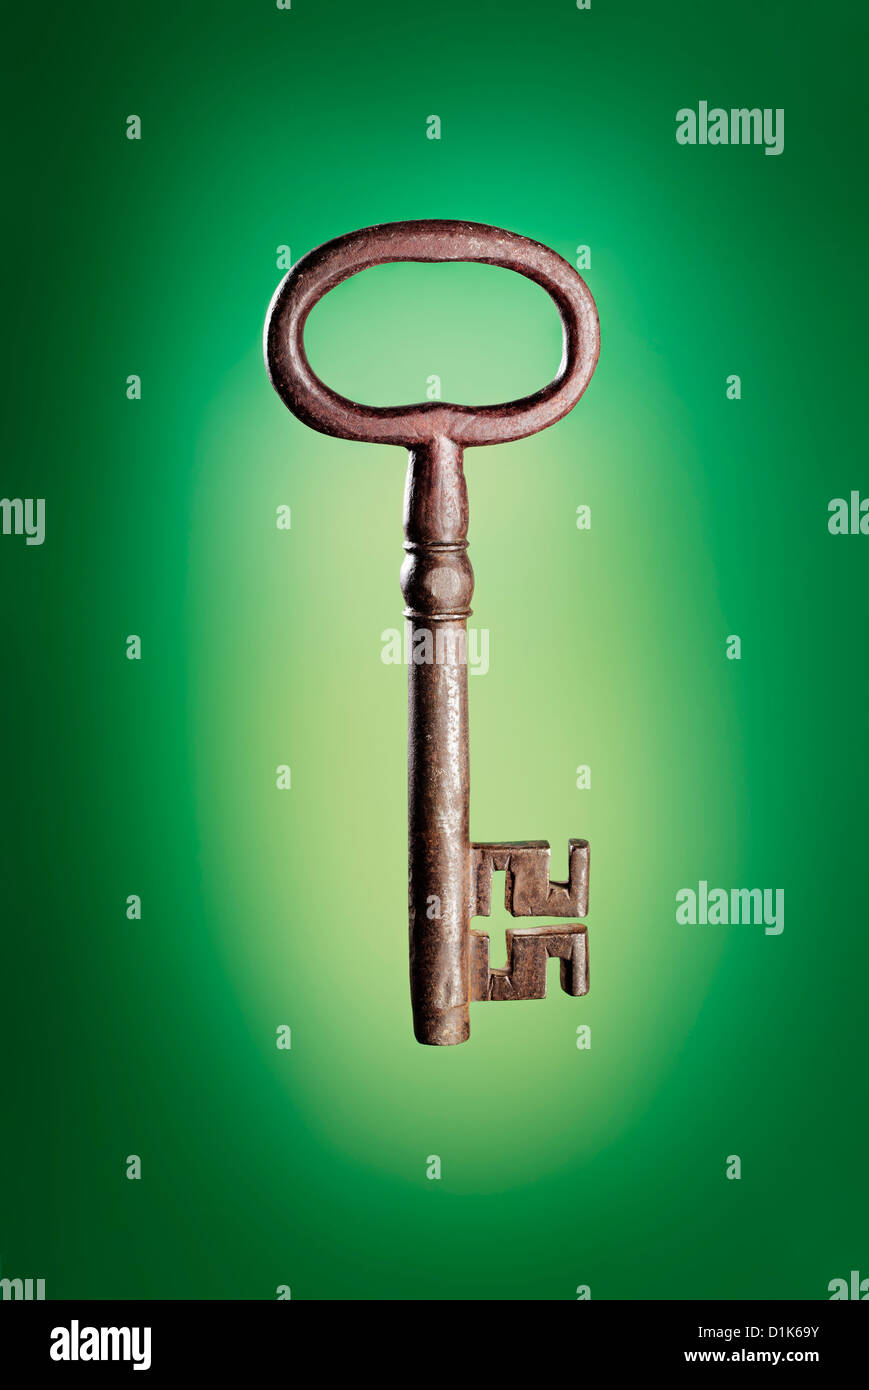 Old big antique key on green background. - Stock Image